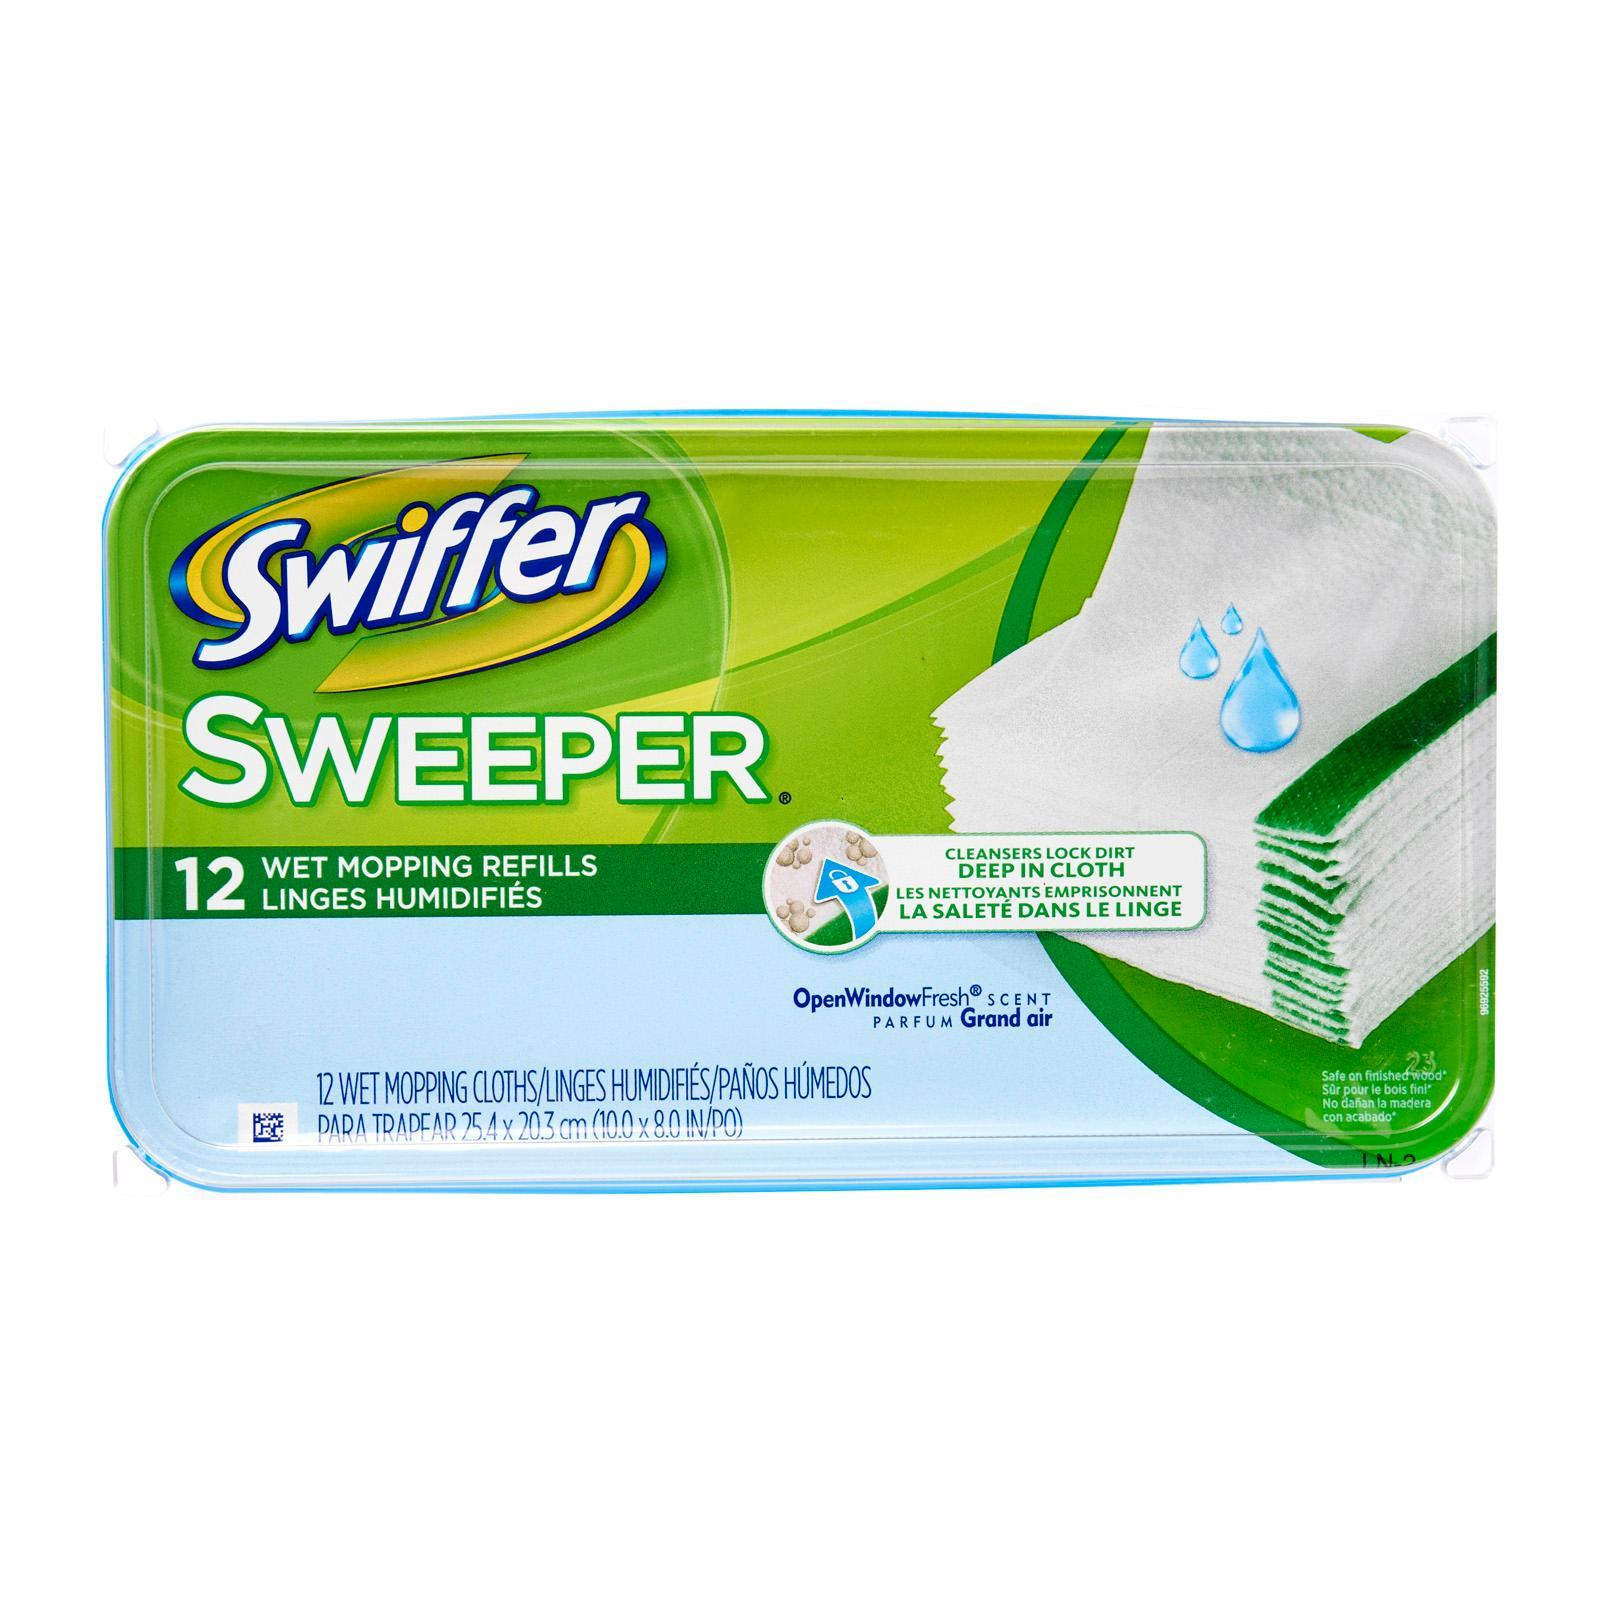 Swiffer Sweeper Wet Mopping Cloth Refill - Open Window Fresh Scent